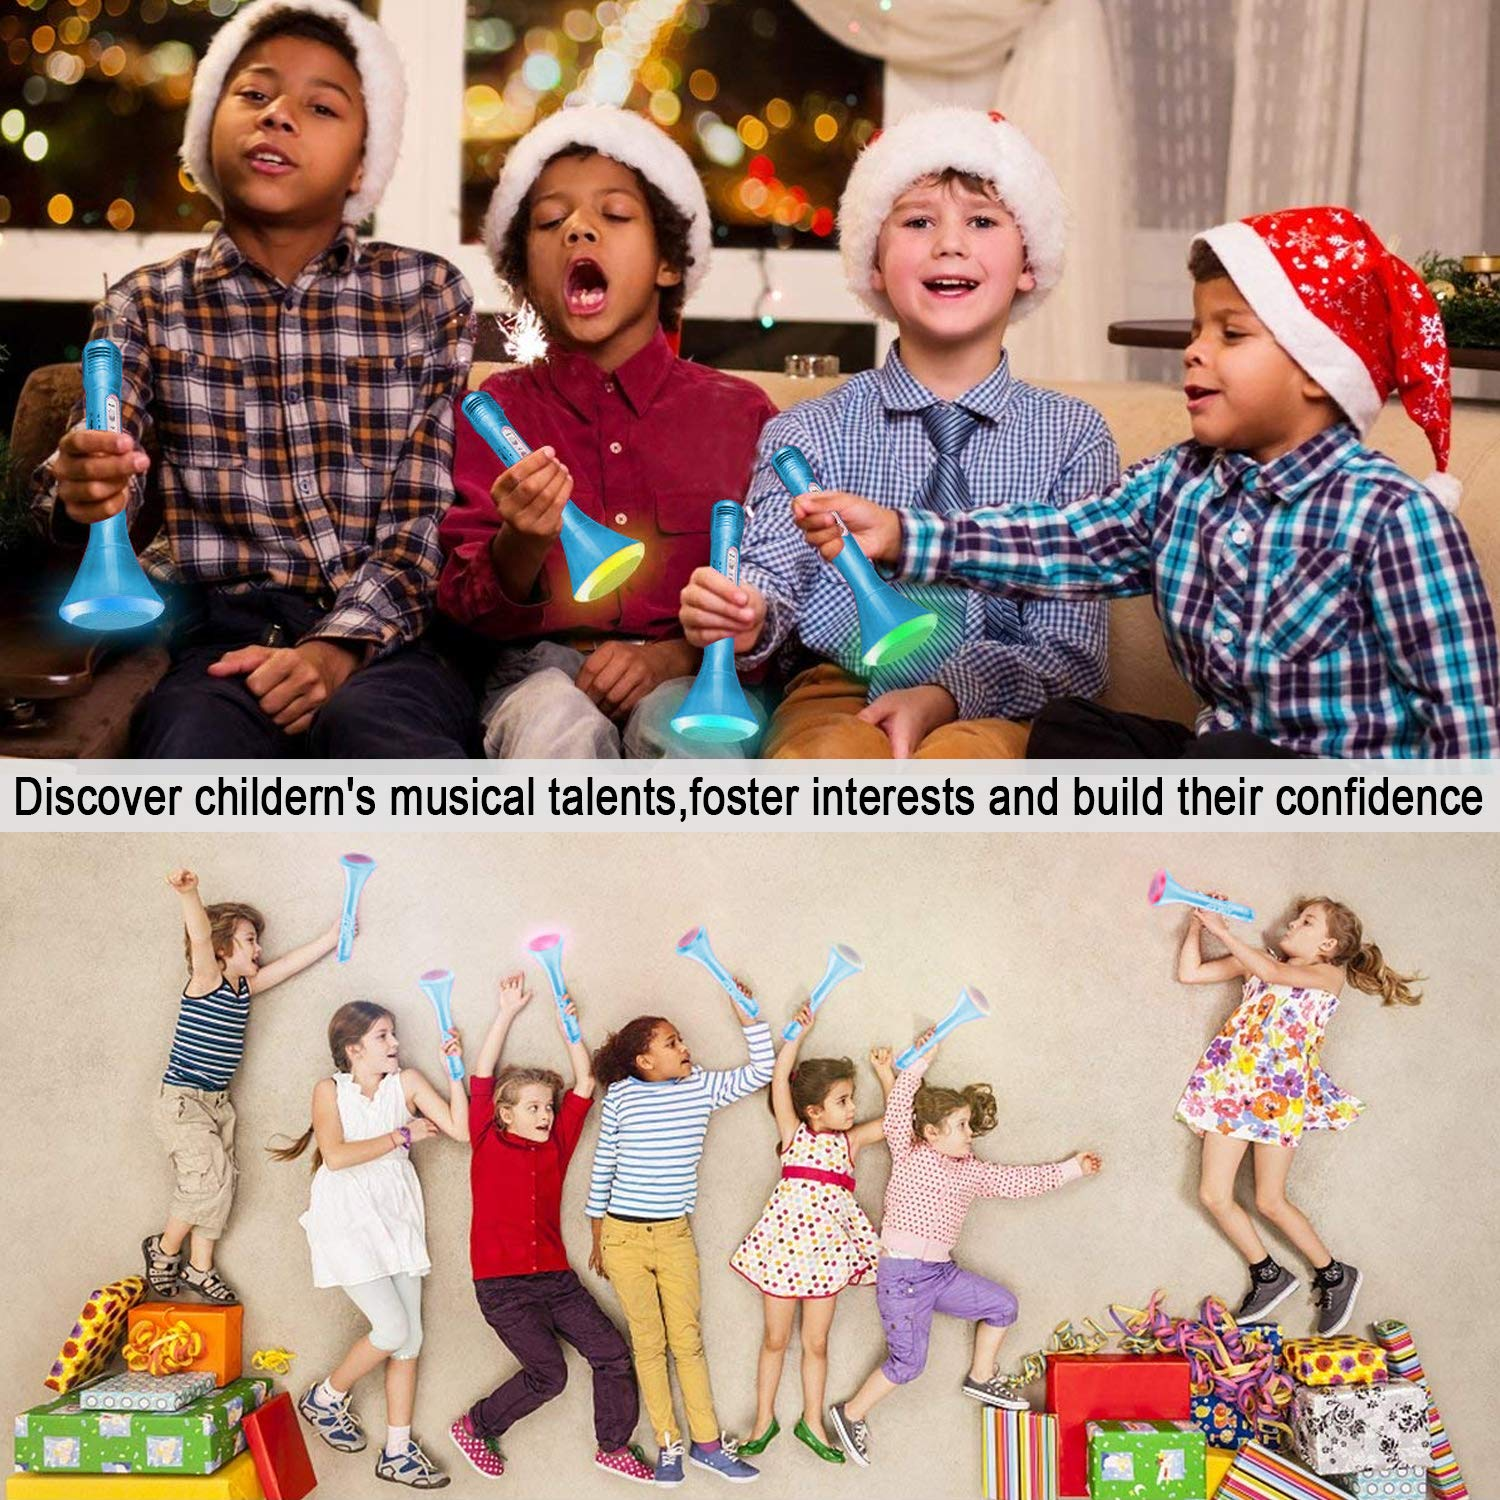 Kids Karaoke Machine Wireless Singing Microphone with Bluetooth Speaker Colorful LED Lights Handheld Portable Music Playing Toys  for Girls Boys Home Party KTV Xmas Birthday Gifts Andriod iOS PC iPad by Santery (Image #3)